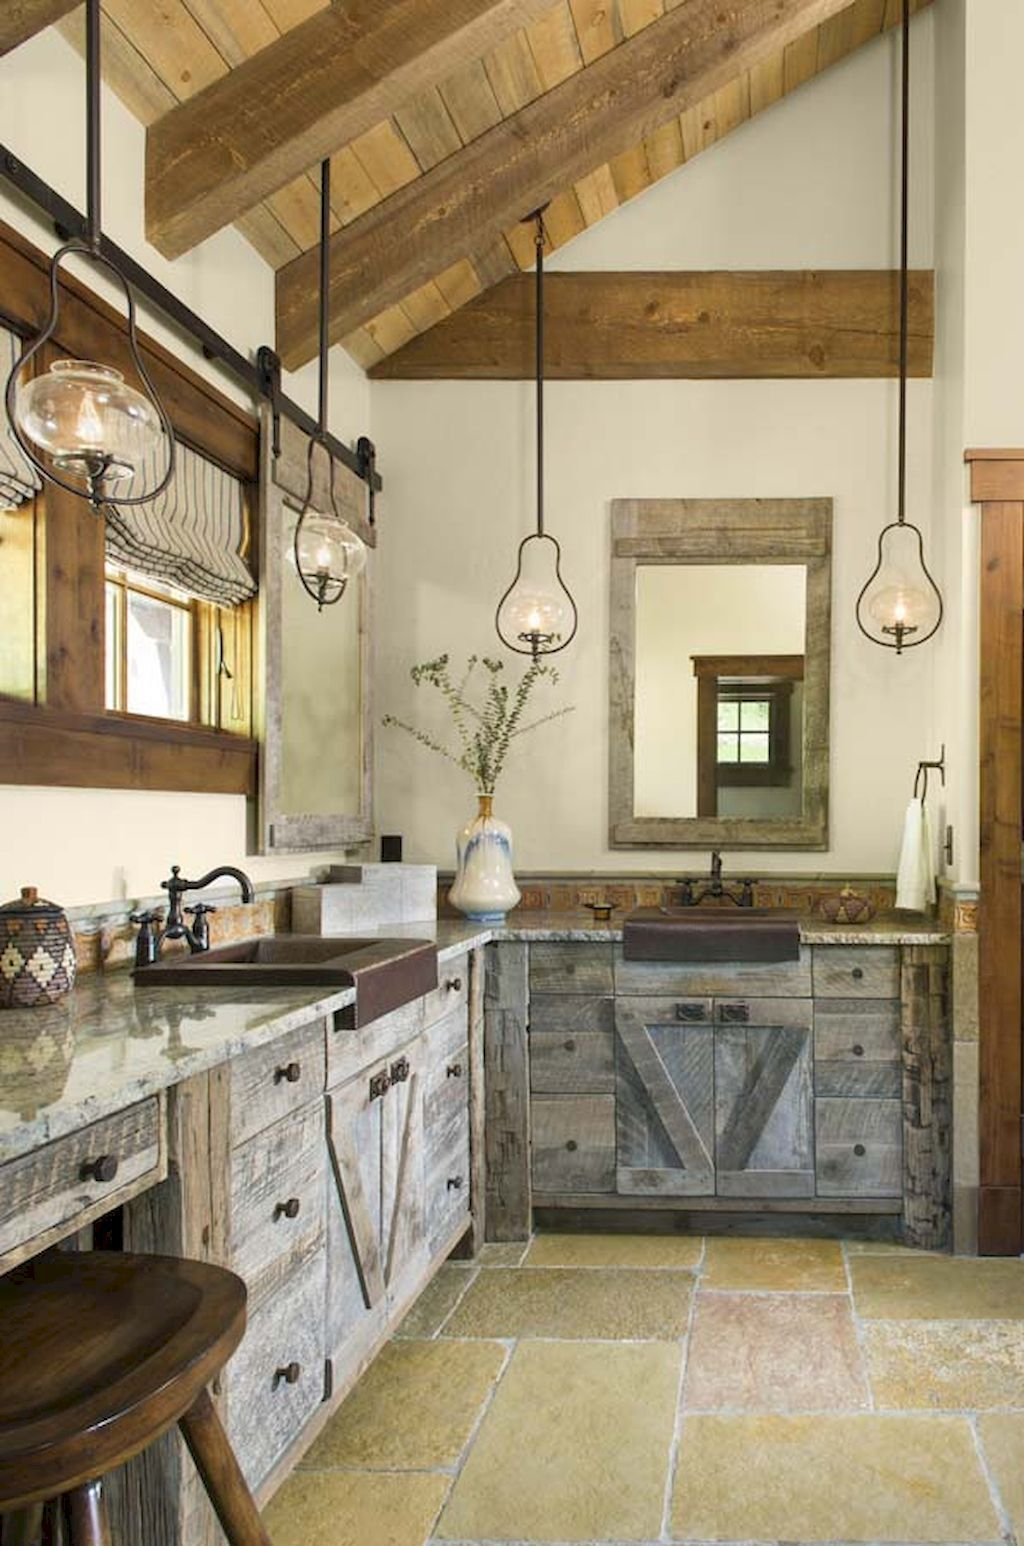 90 rustic kitchen cabinets farmhouse style ideas 37 rustic kitchen cabinets rustic kitchen on kitchen cabinets farmhouse style id=75676